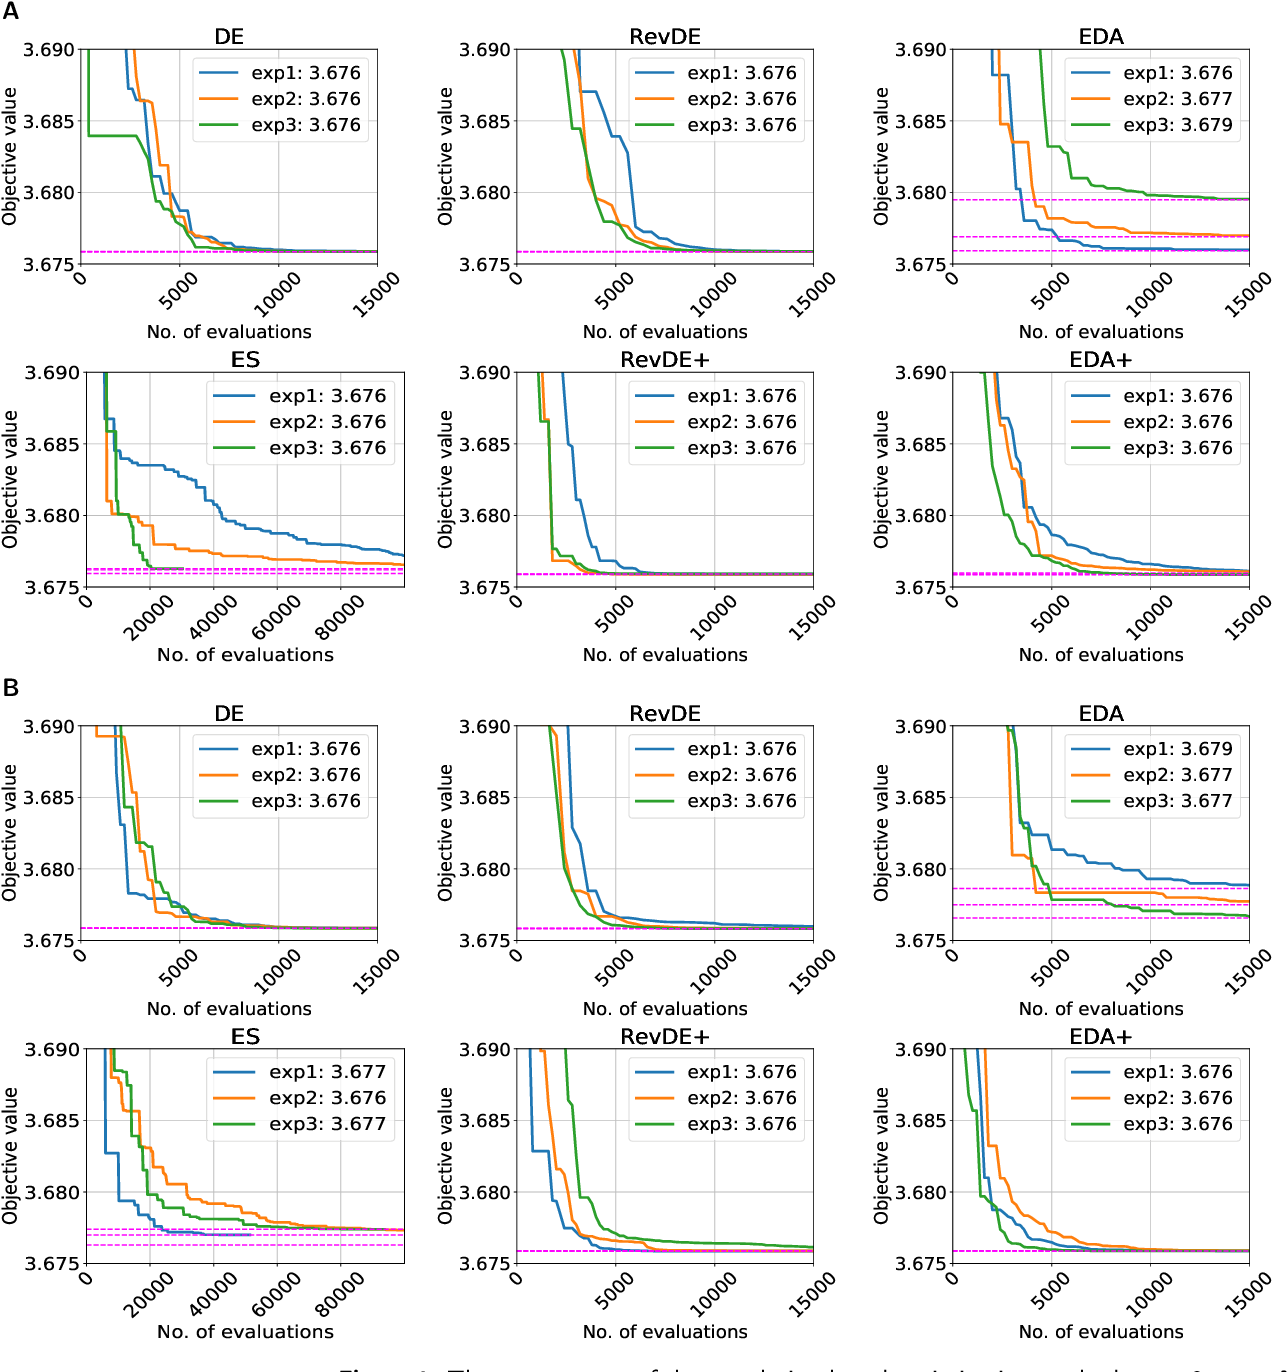 Figure 4 for Population-based Optimization for Kinetic Parameter Identification in Glycolytic Pathway in Saccharomyces cerevisiae